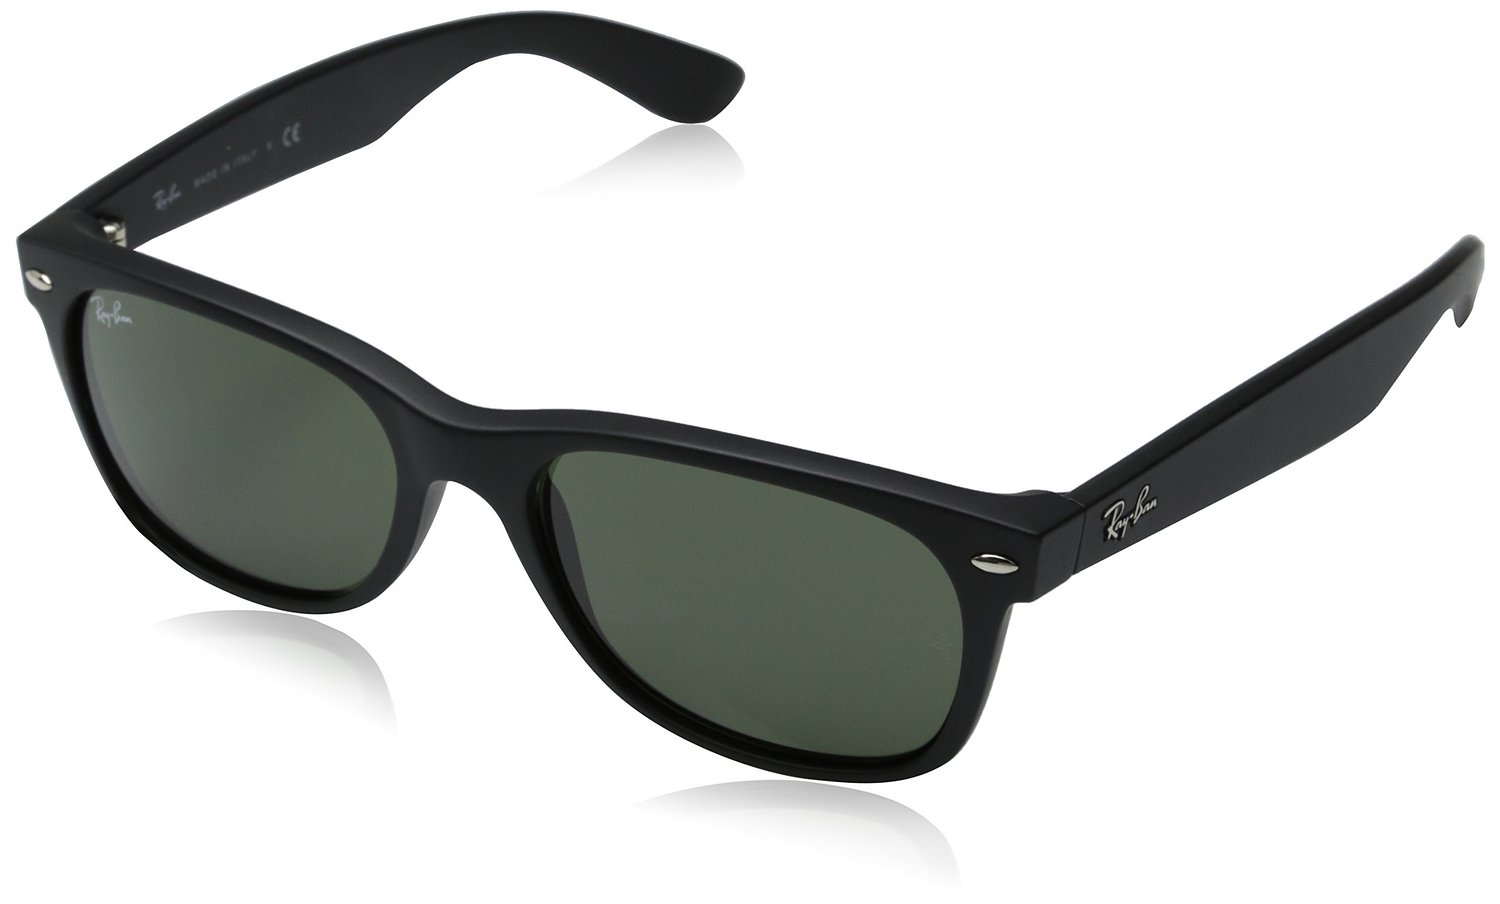 Ray Ban Mens New Wayfarer Sunglasses